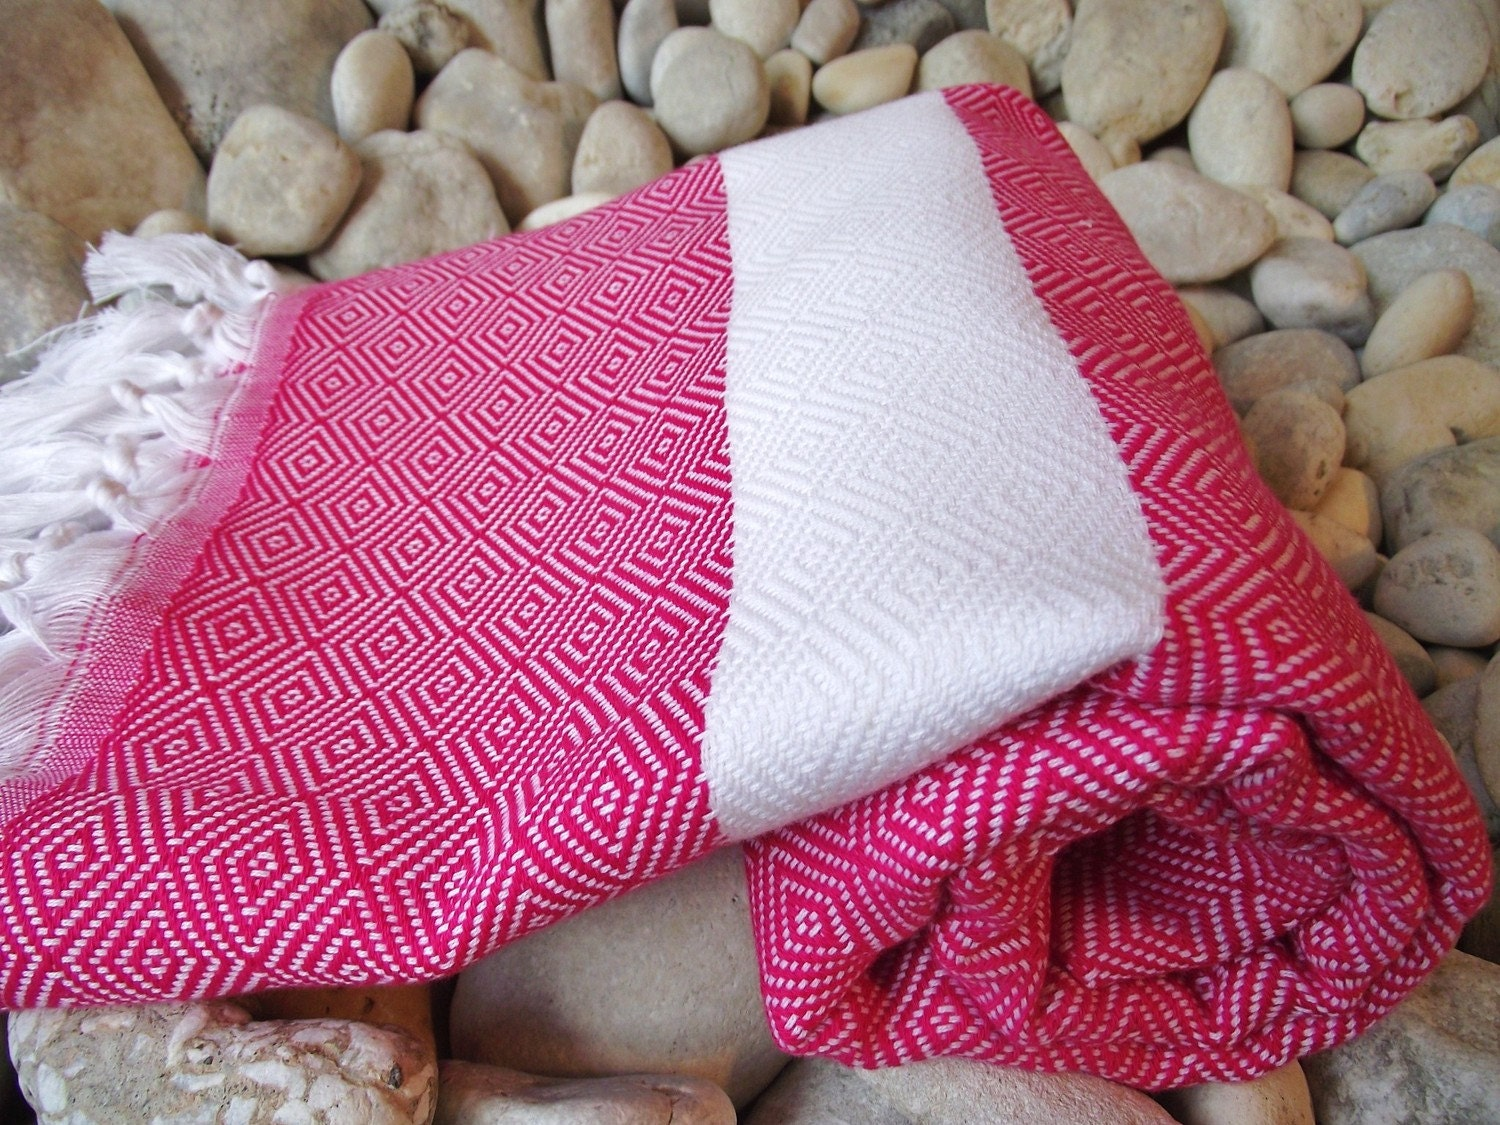 Hand-Woven Turkish Cotton Bath Towel or Sarong-Fuchsia and White